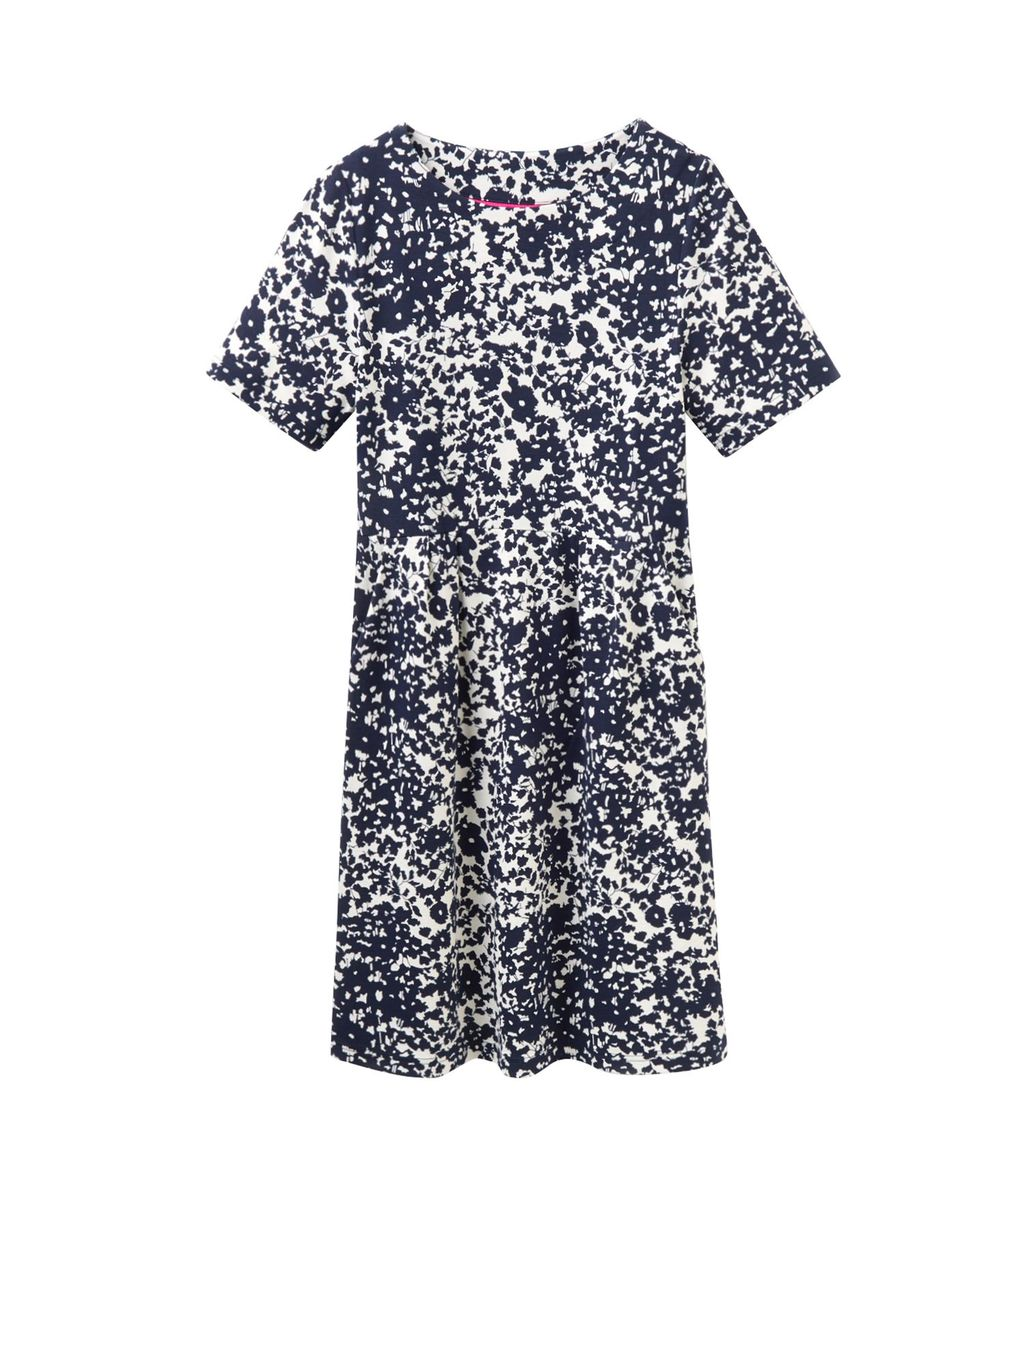 Jersey Printed Dress, Navy - style: shift; predominant colour: white; secondary colour: navy; occasions: casual; length: just above the knee; fit: body skimming; fibres: viscose/rayon - stretch; neckline: crew; sleeve length: short sleeve; sleeve style: standard; pattern type: fabric; pattern: patterned/print; texture group: jersey - stretchy/drapey; multicoloured: multicoloured; season: a/w 2016; wardrobe: highlight